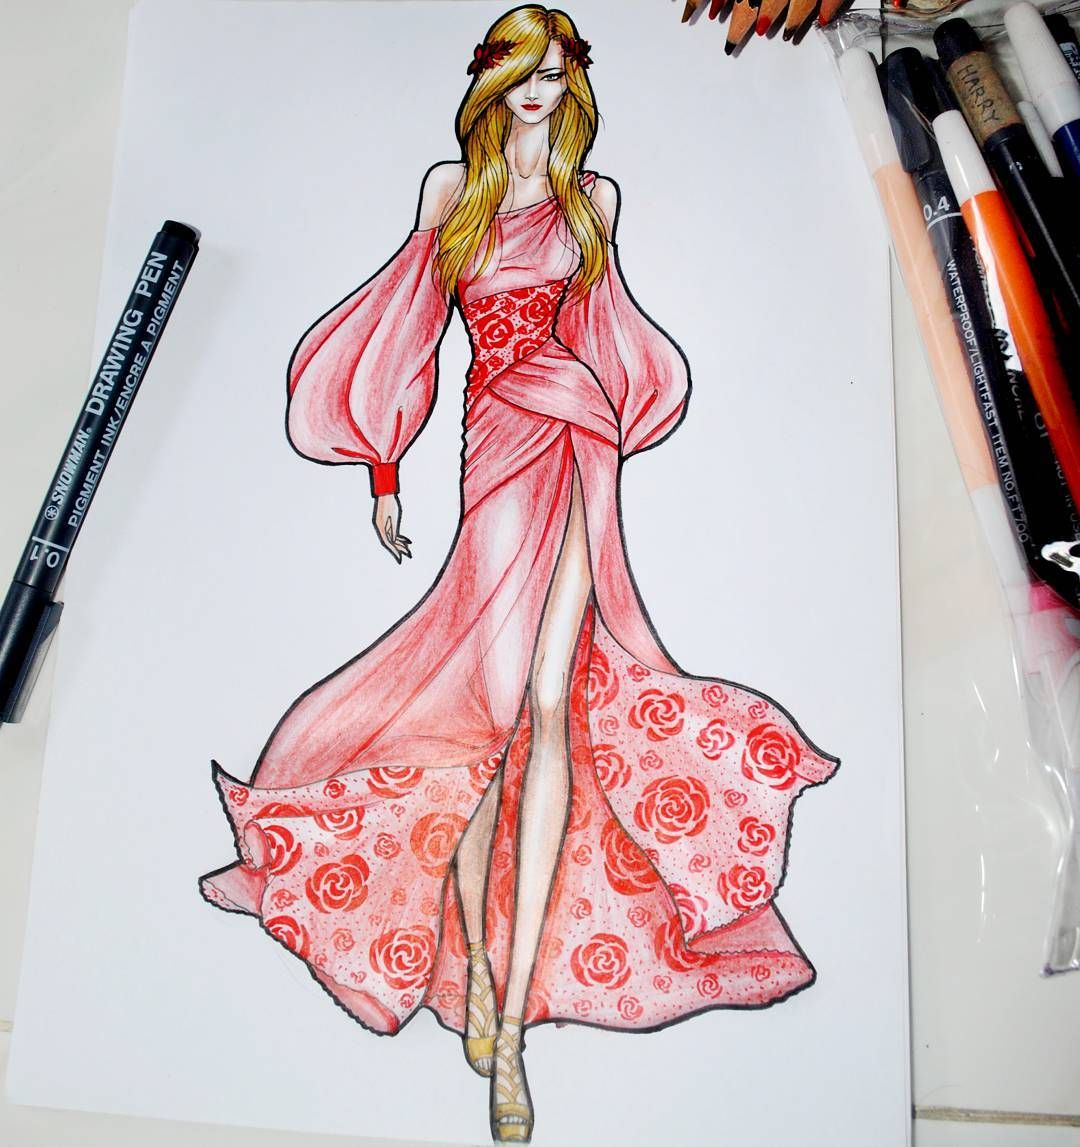 1 194 Likes 22 Comments Harry Sandi Harry Sandi On Instagram Beau Fashion Illustration Sketches Dresses Fashion Design Sketchbook Dress Design Sketches